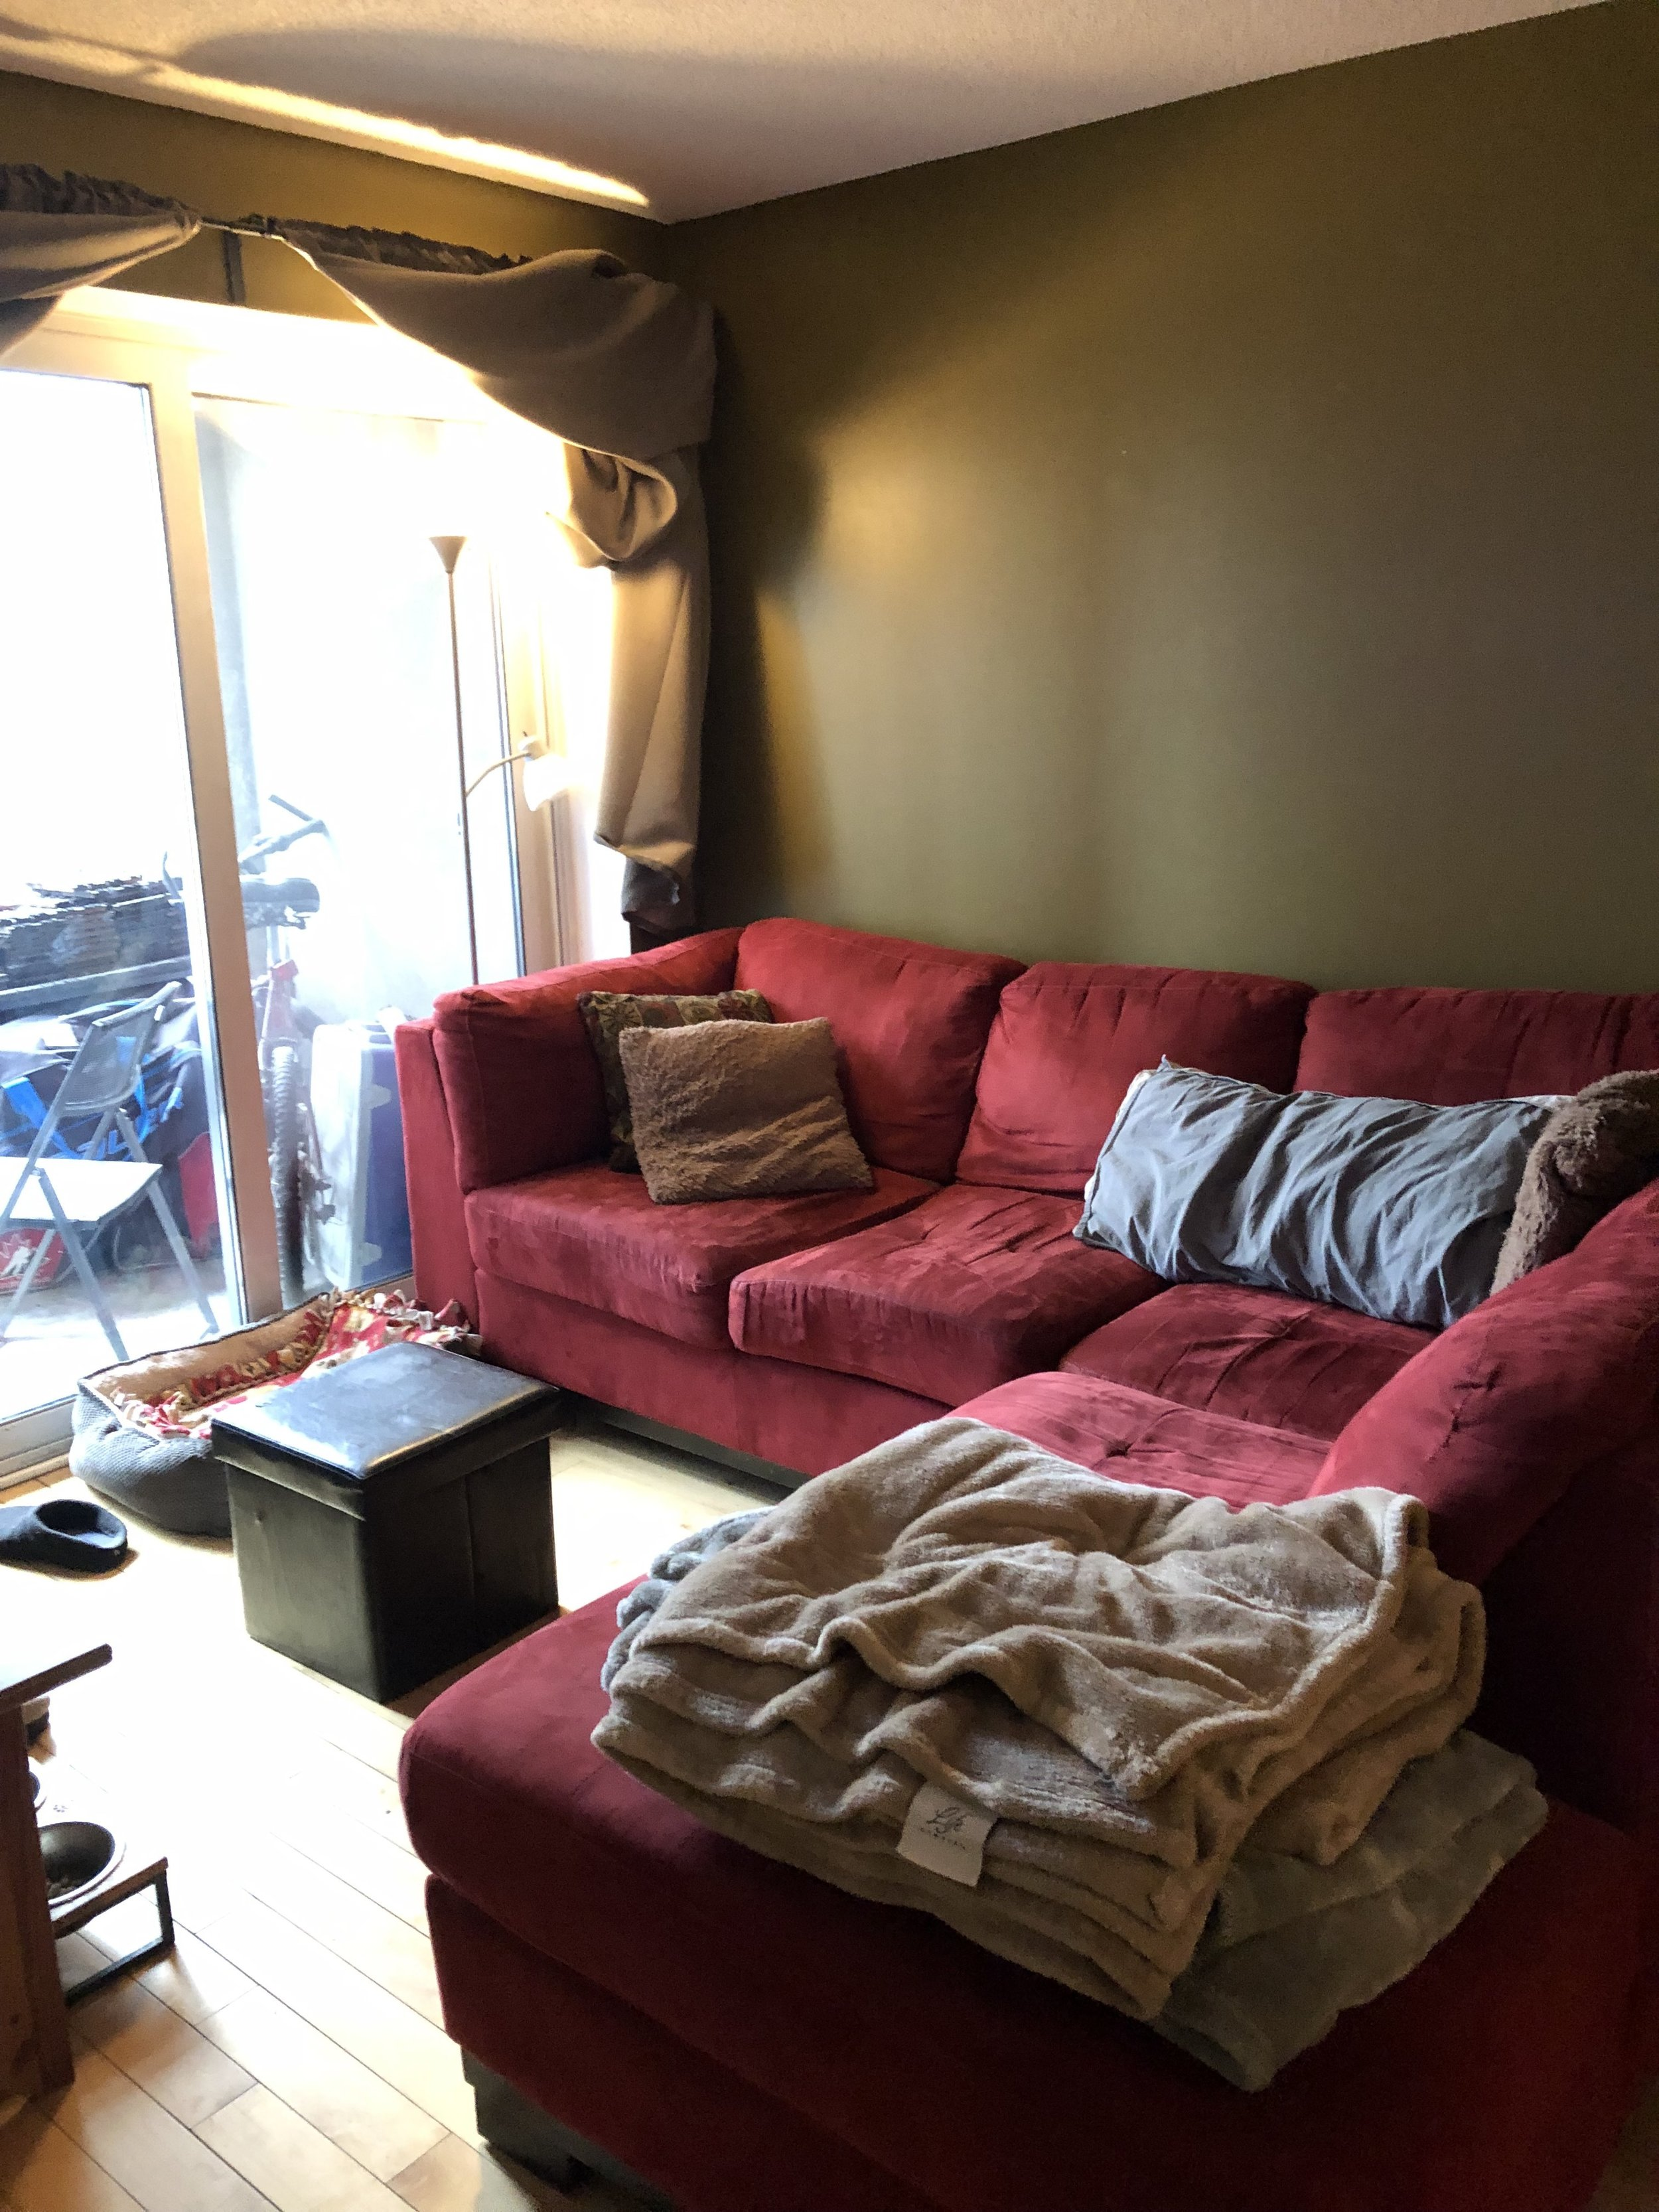 "It was hard to miss the large red sofa as soon as you walked in to this condo. ""Our living room lacks cohesion and it's not pleasing to the eye"","" said one of the contest winners. ""I believe we took the 'What's the most affordable?' approach when it came to buying furniture."""